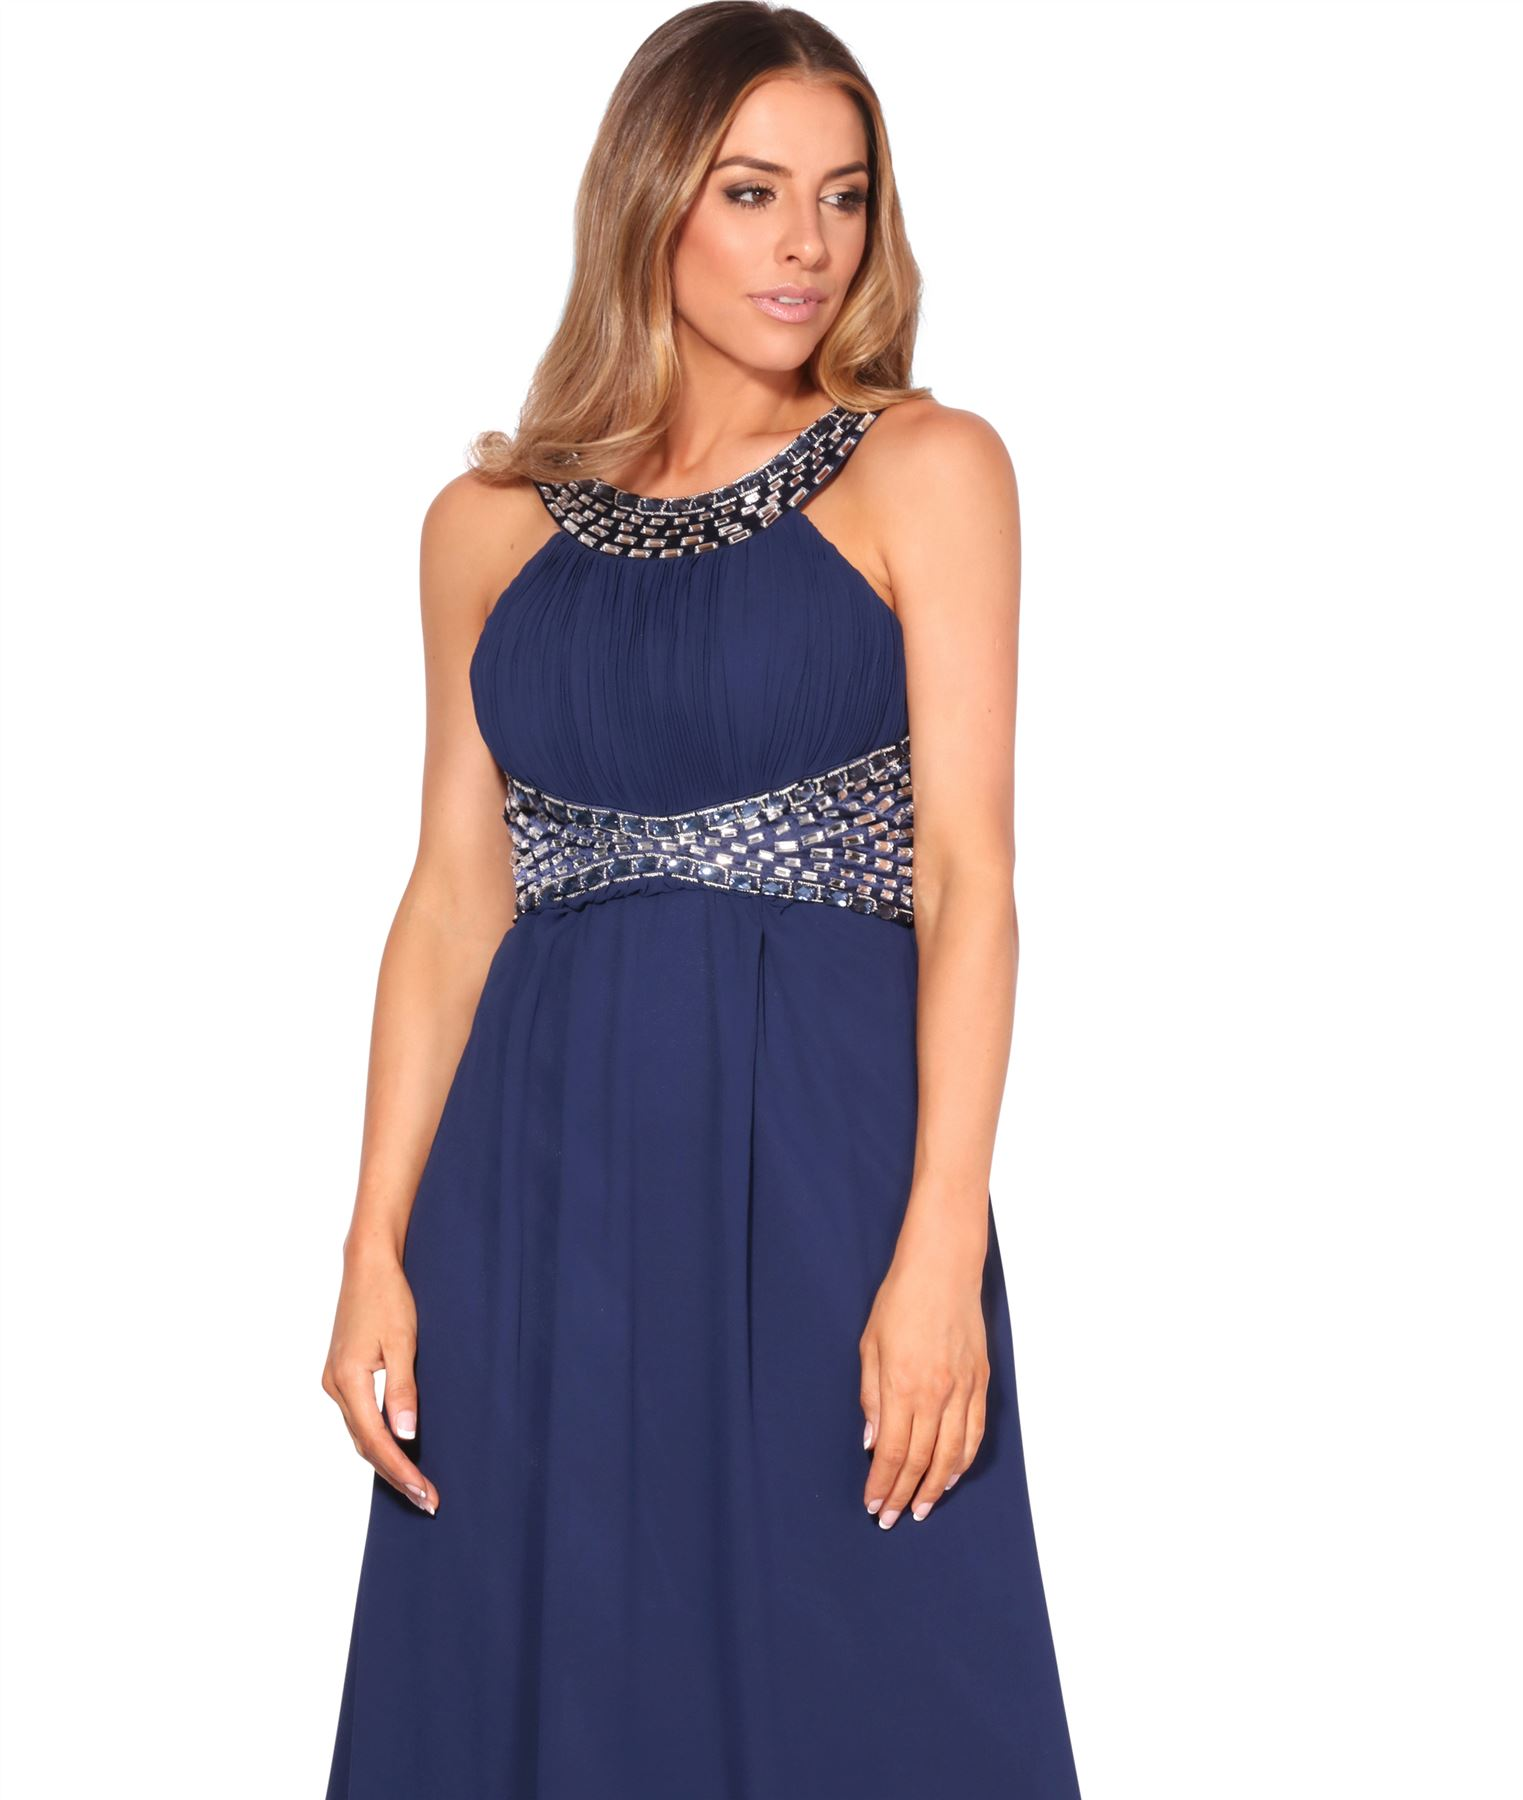 Women-Formal-Diamante-Wedding-Cocktail-Dress-Long-Ball-Gown-Prom-Maxi-Party-8-18 thumbnail 18